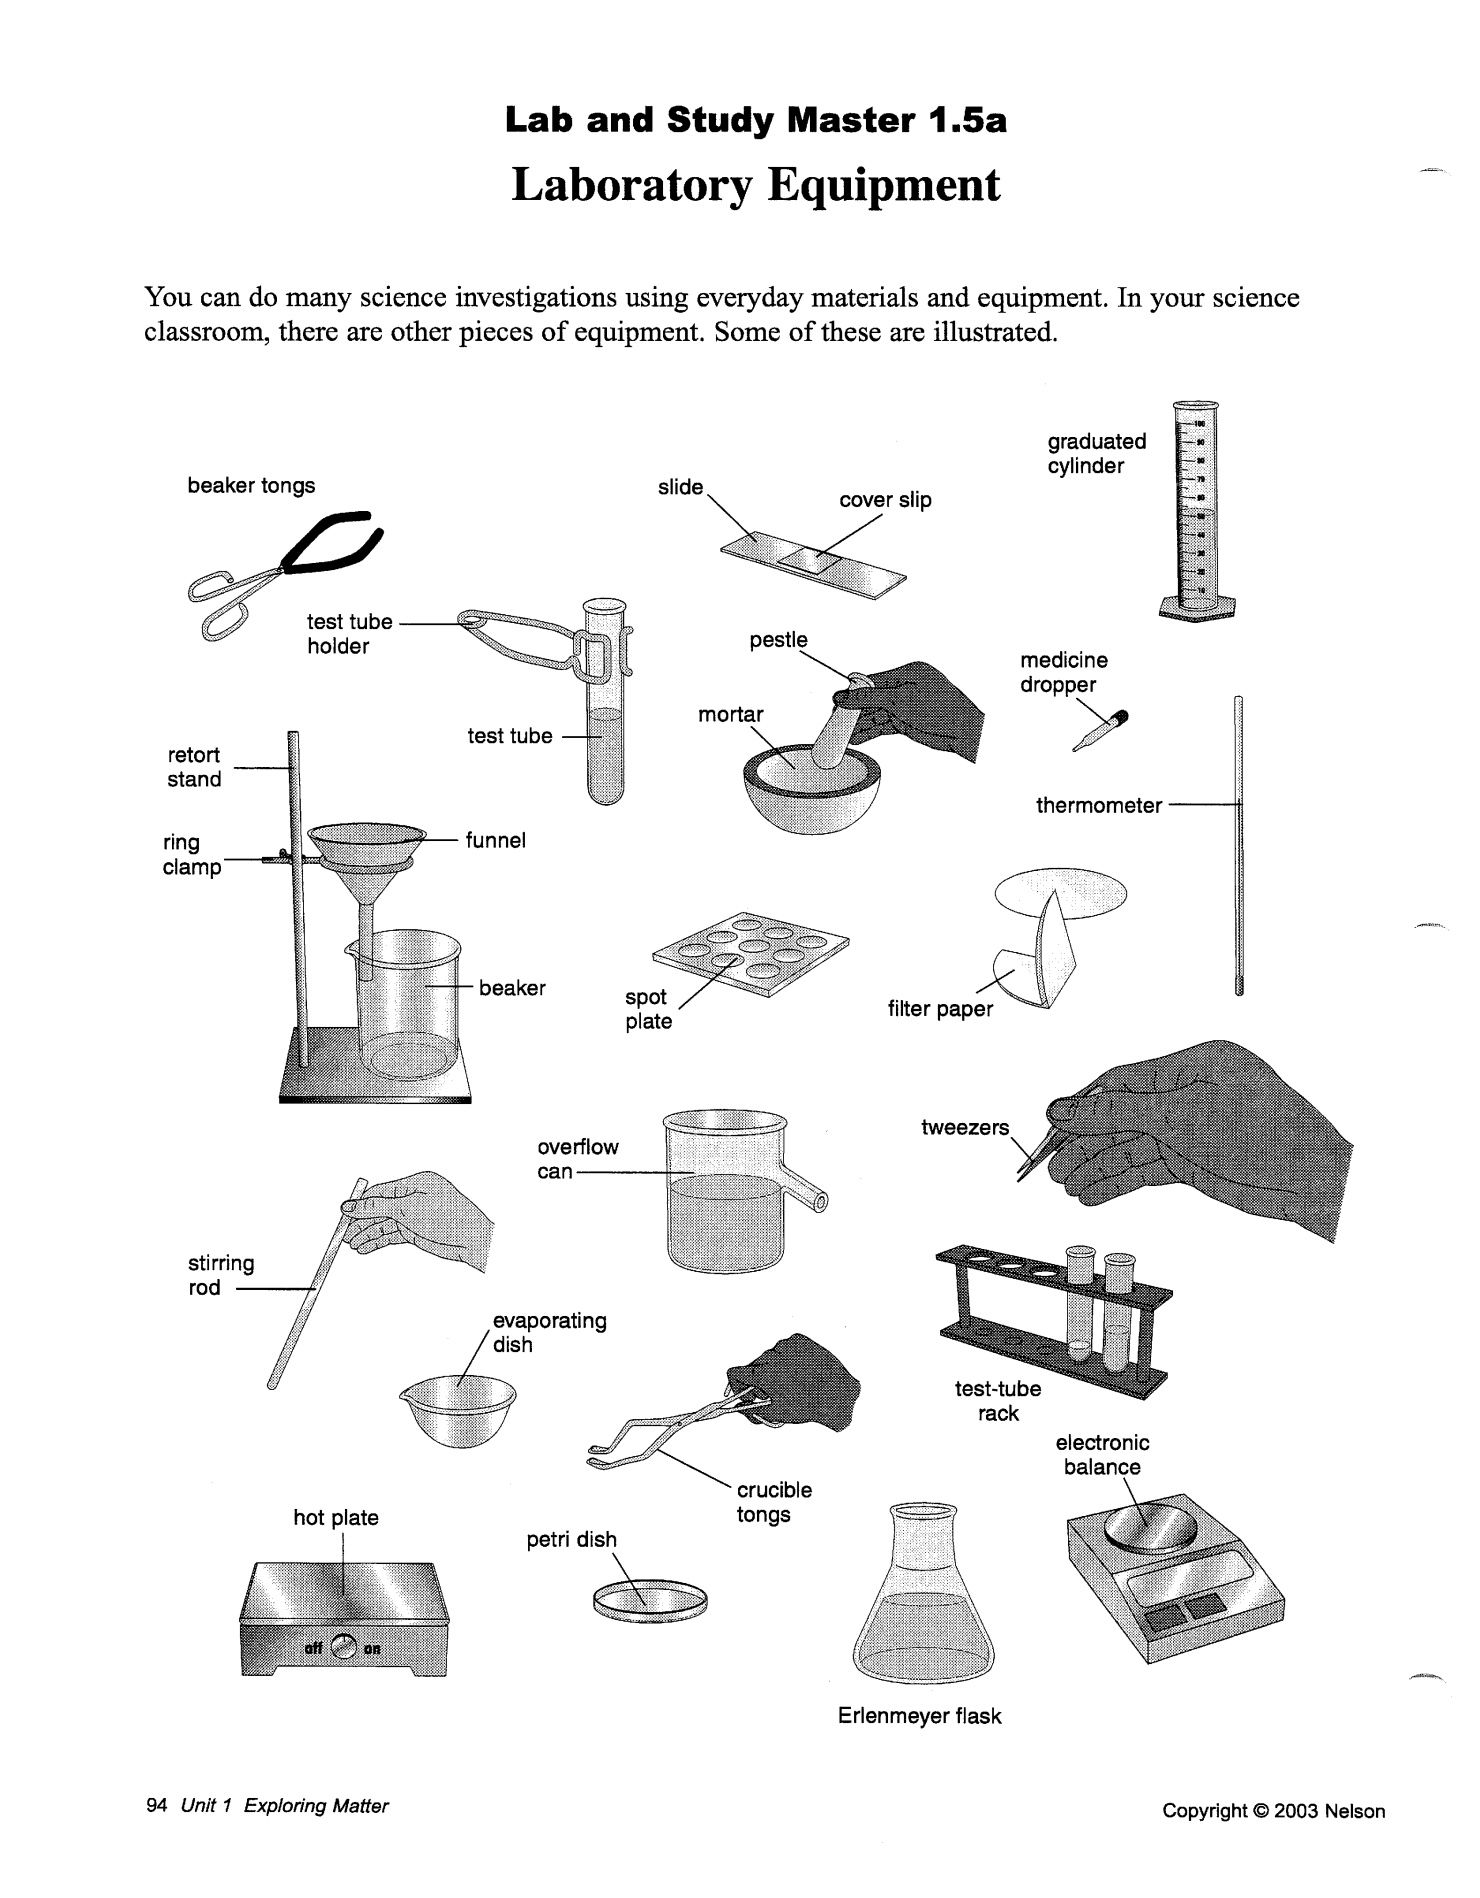 Laboratory Equipment - Names for some common pieces - Monday [ 1898 x 1480 Pixel ]